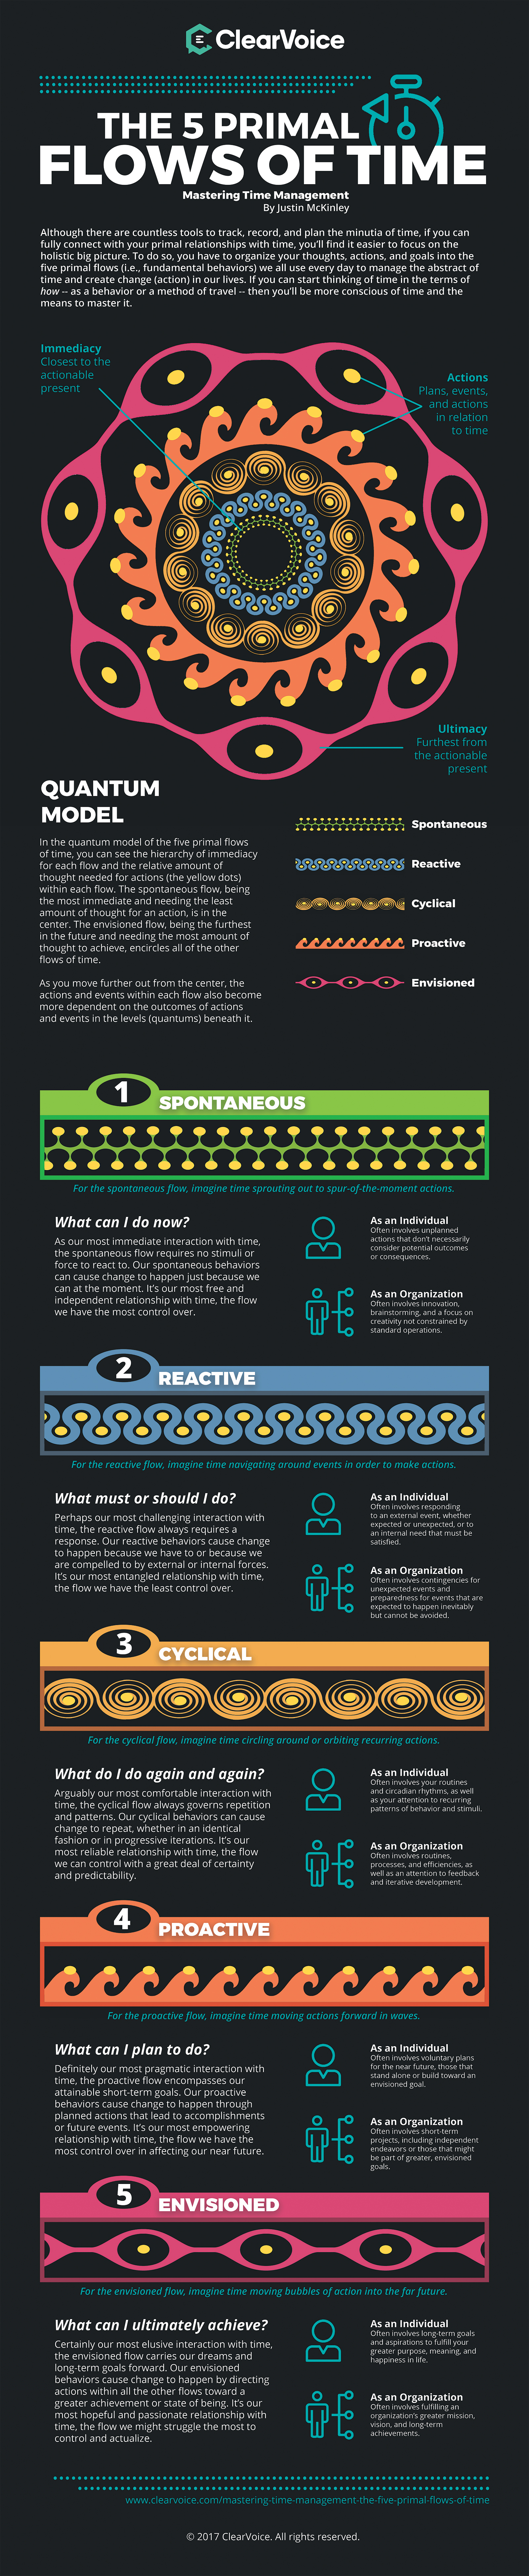 What is Time? Here's An Interesting Approach! - Infographic